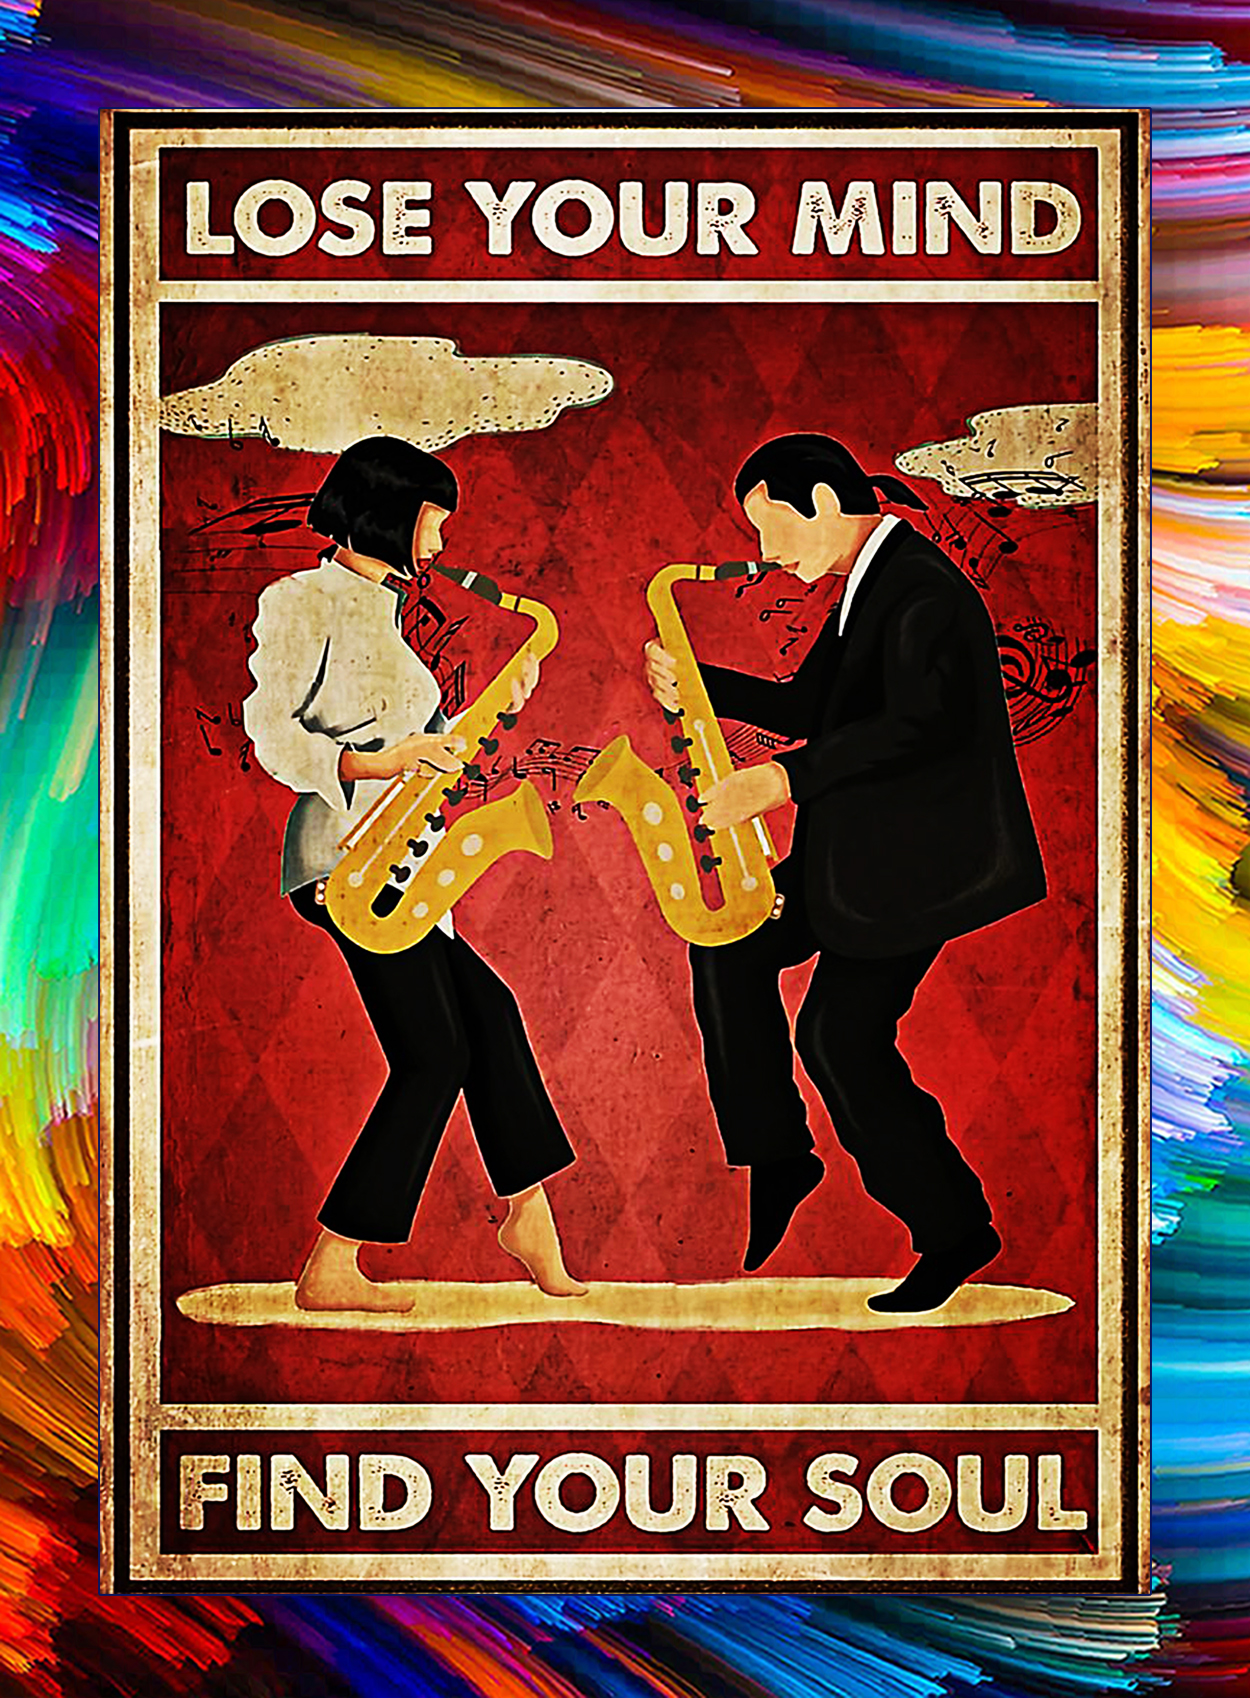 Saxophone pulp fiction lose your mind find your soul poster - A3